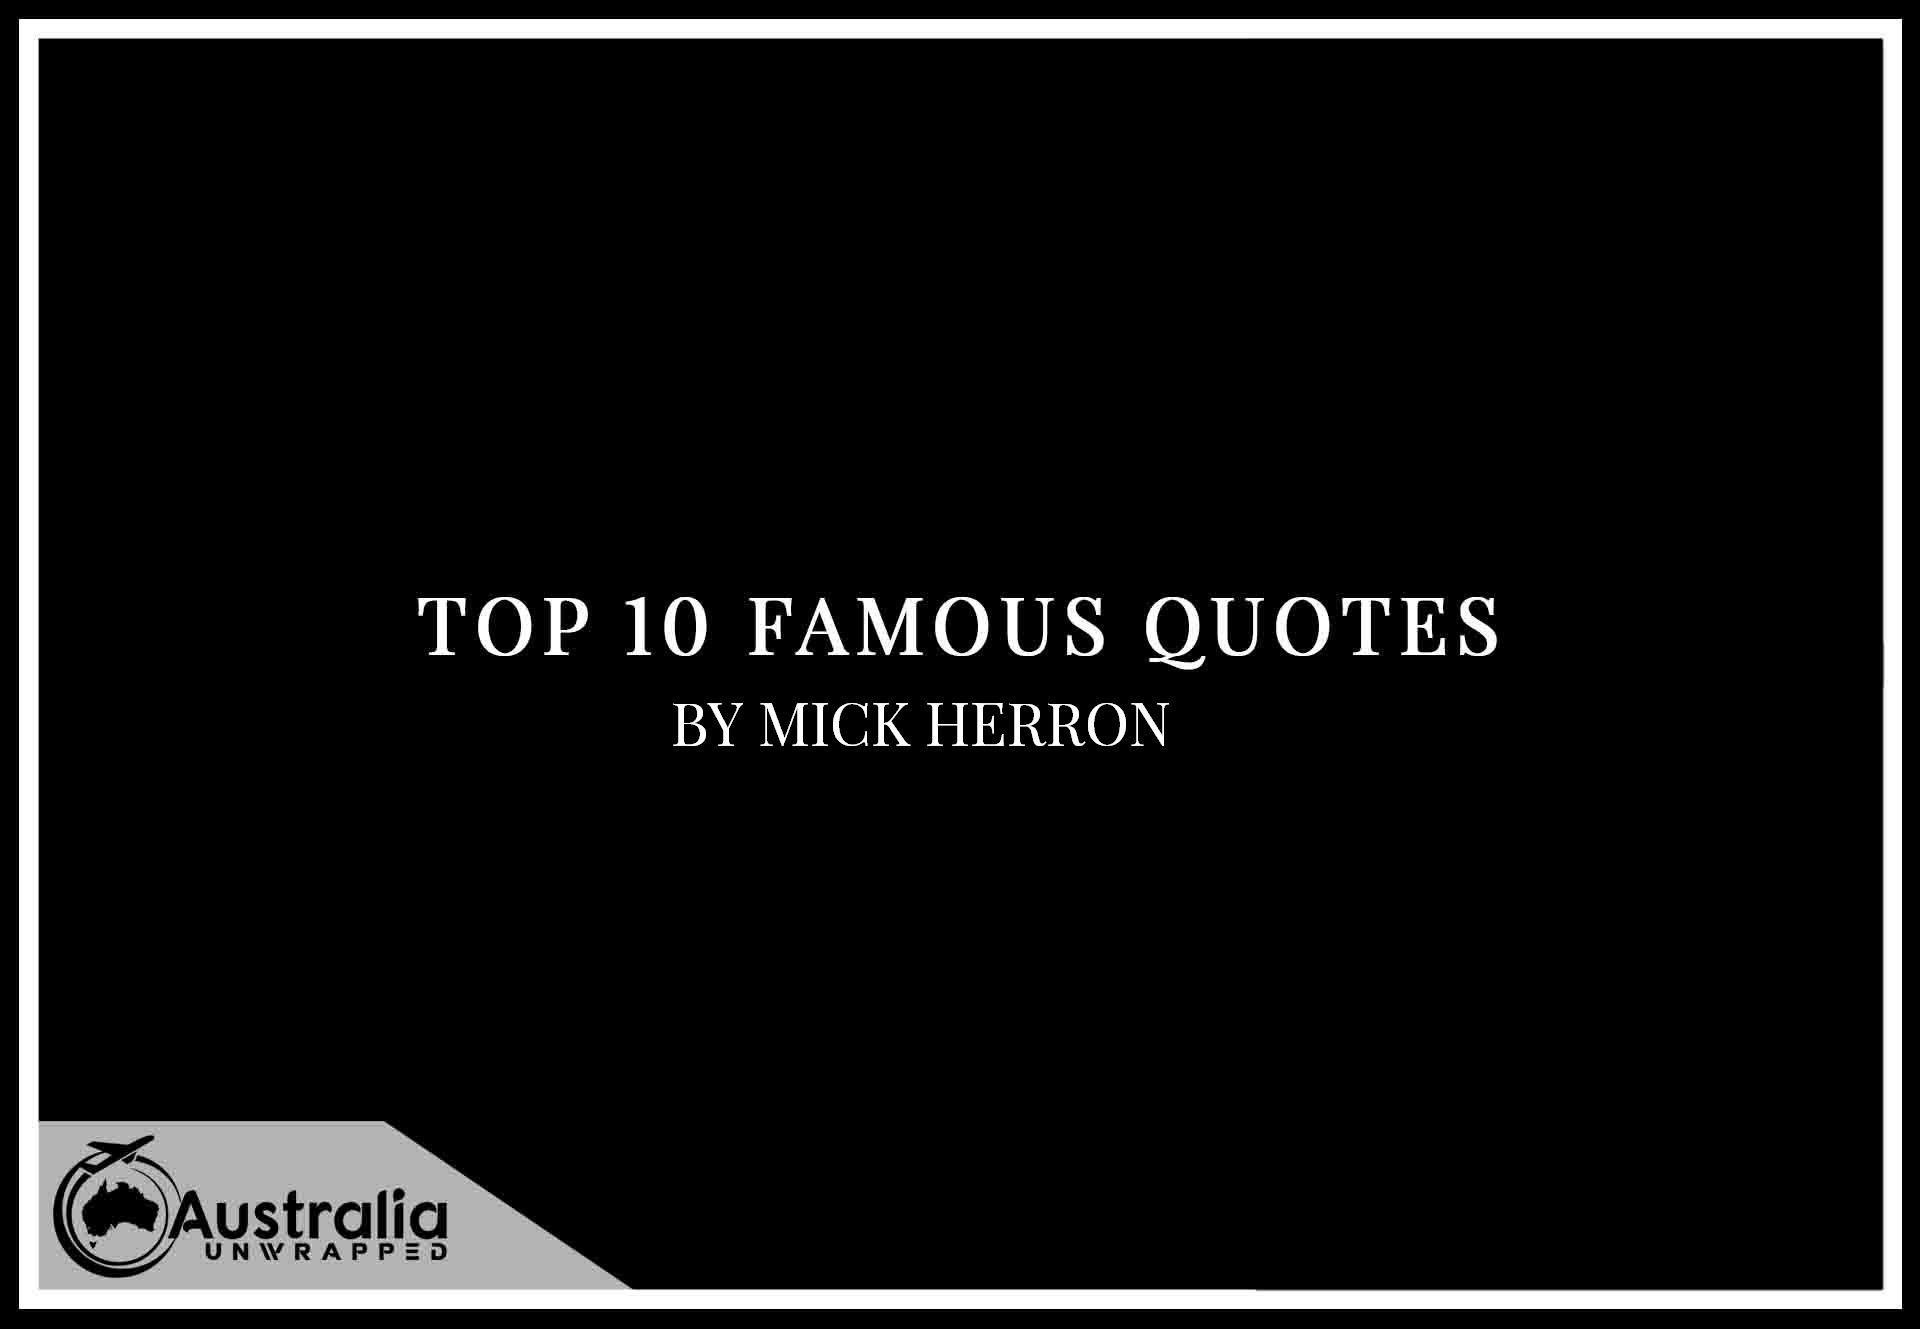 Top 10 Famous Quotes by Author Mick Herron